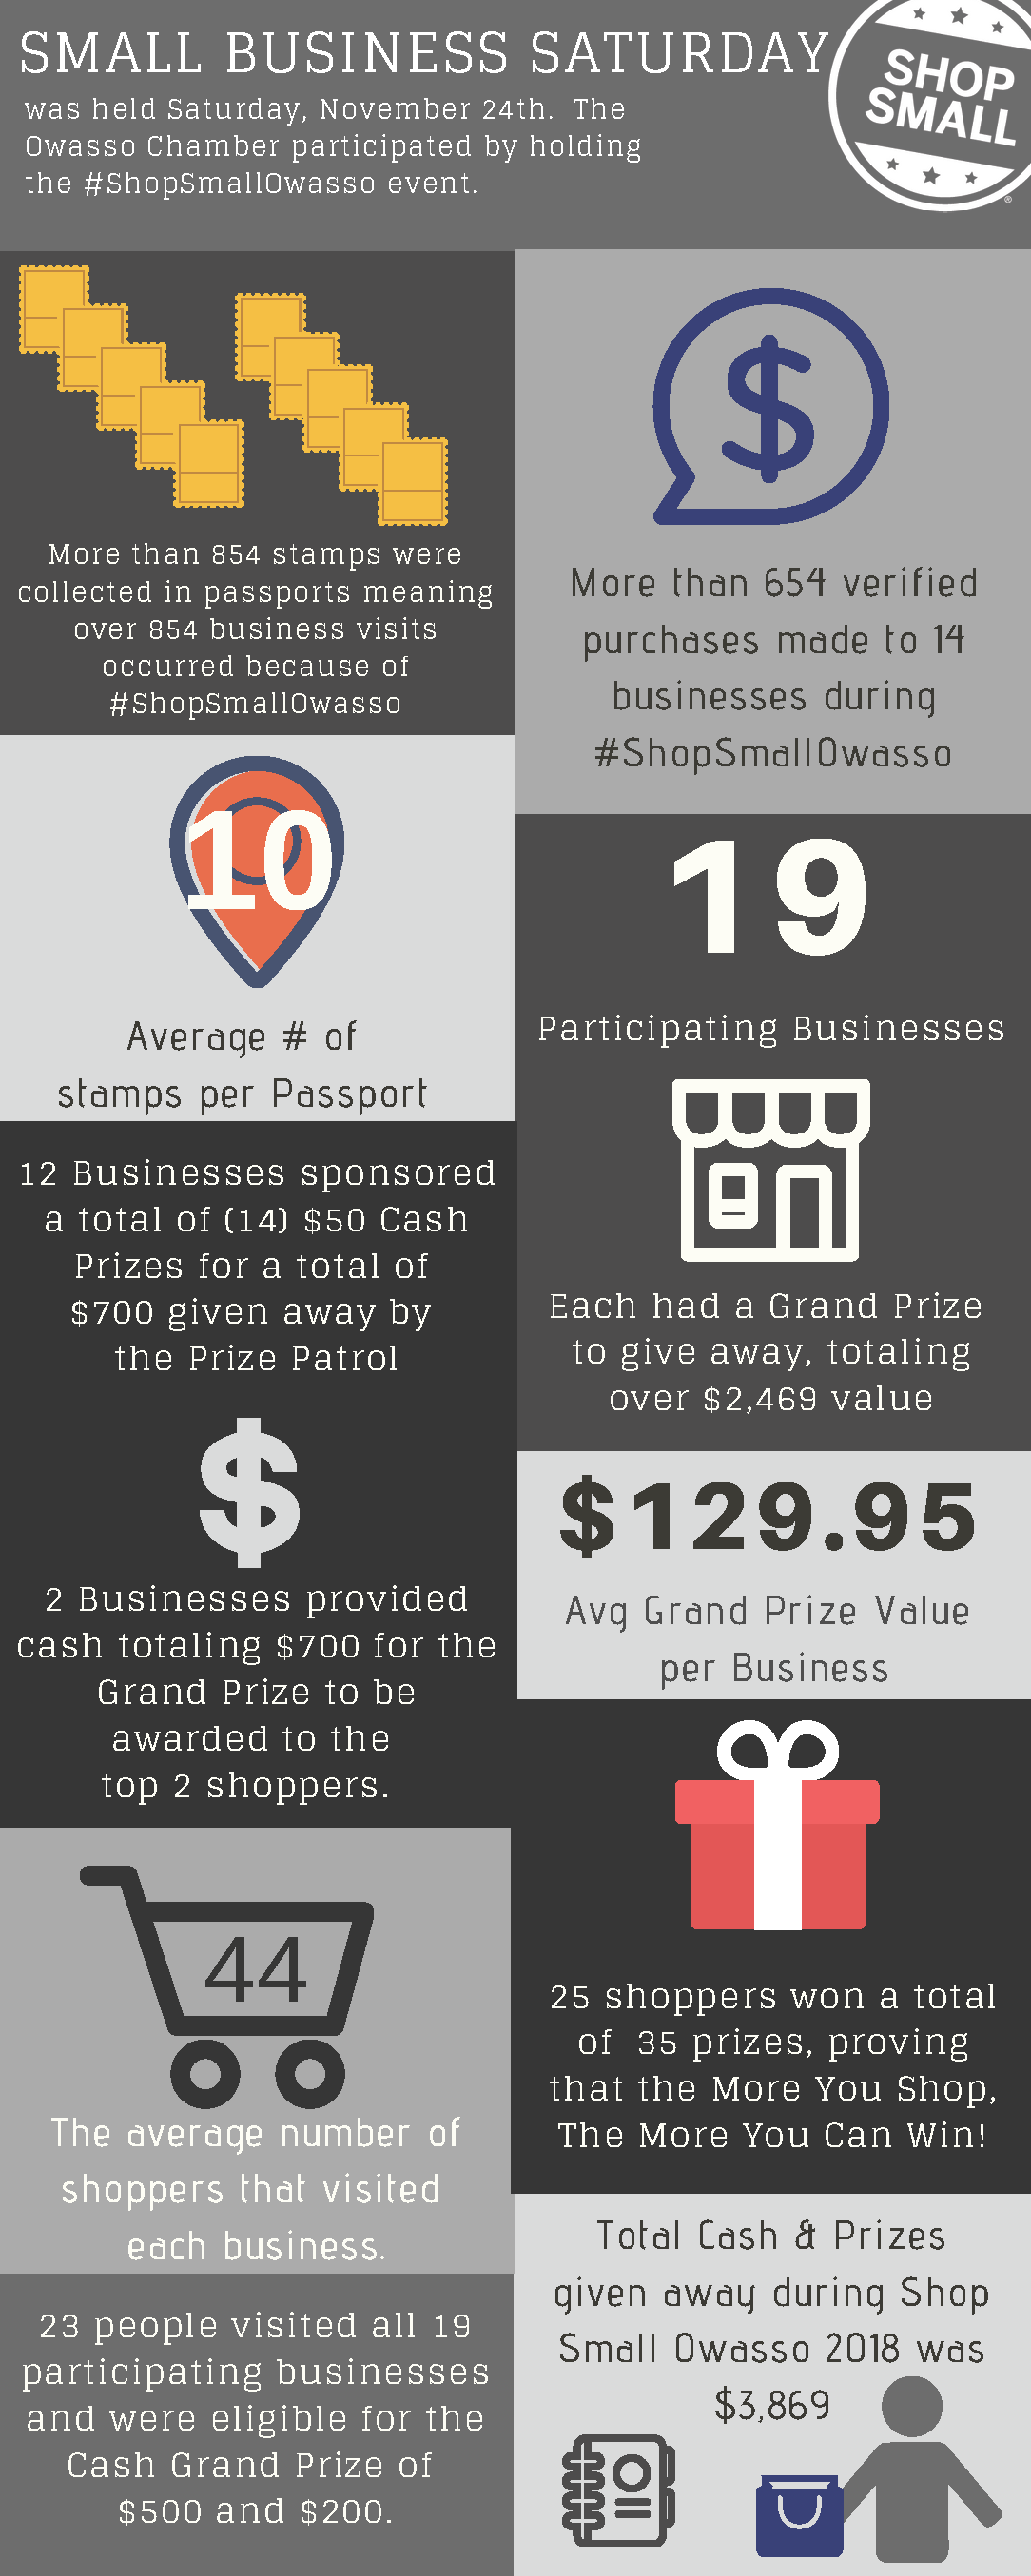 2018 Shop Small Owasso Results - Owasso Chamber of Commerce, OK